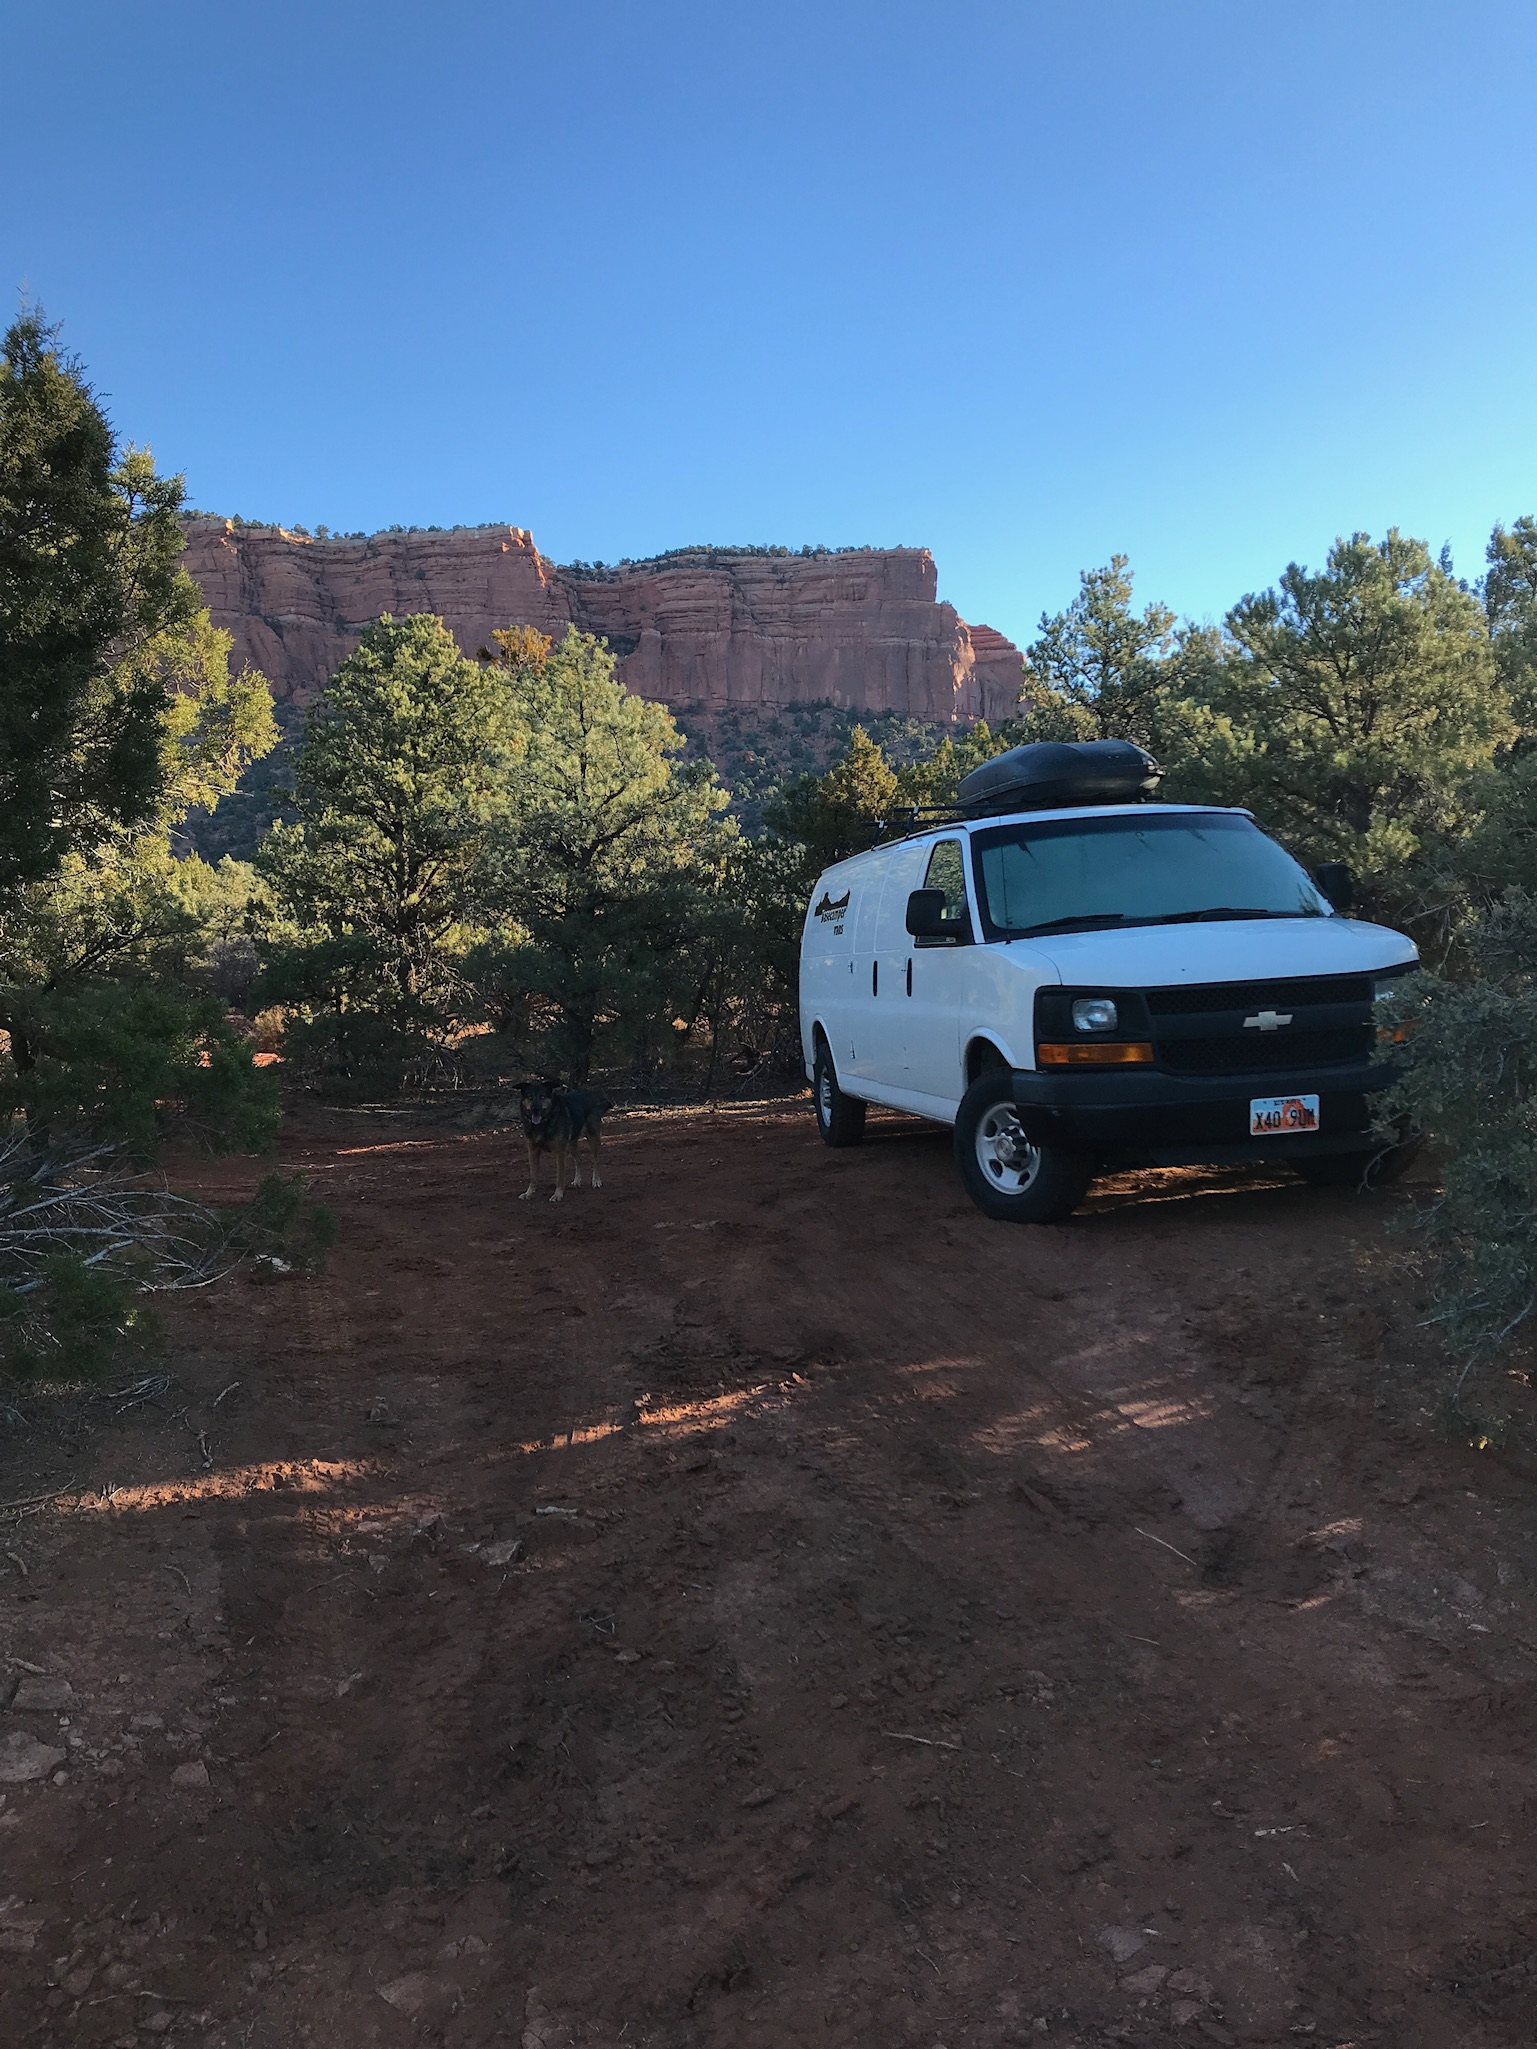 Where we rolled up the van, we evened it out for night two.